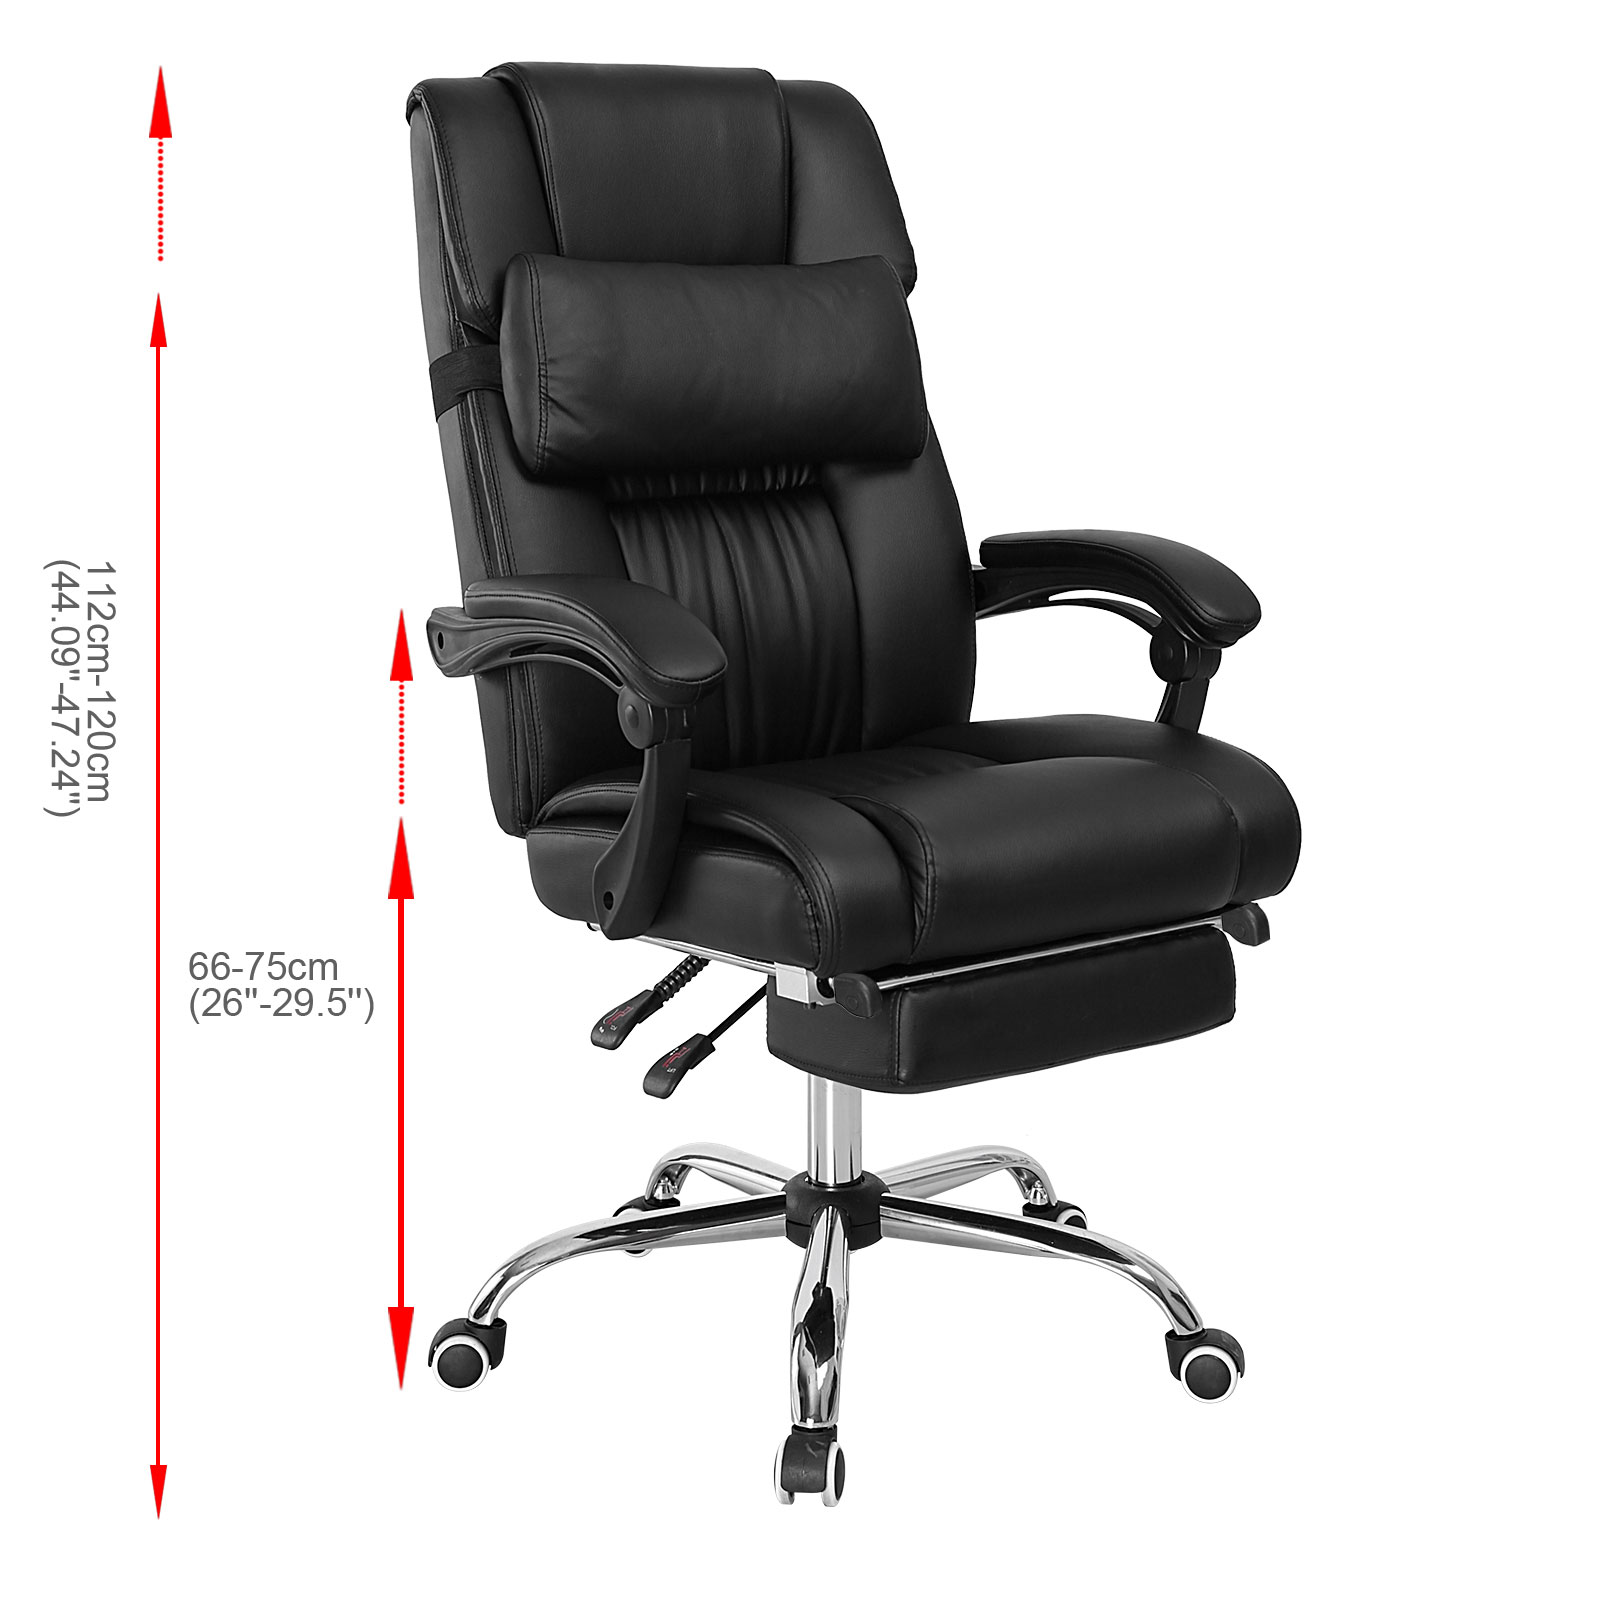 ergonomic chair with footrest vintage dining table and chairs executive reclining office high back